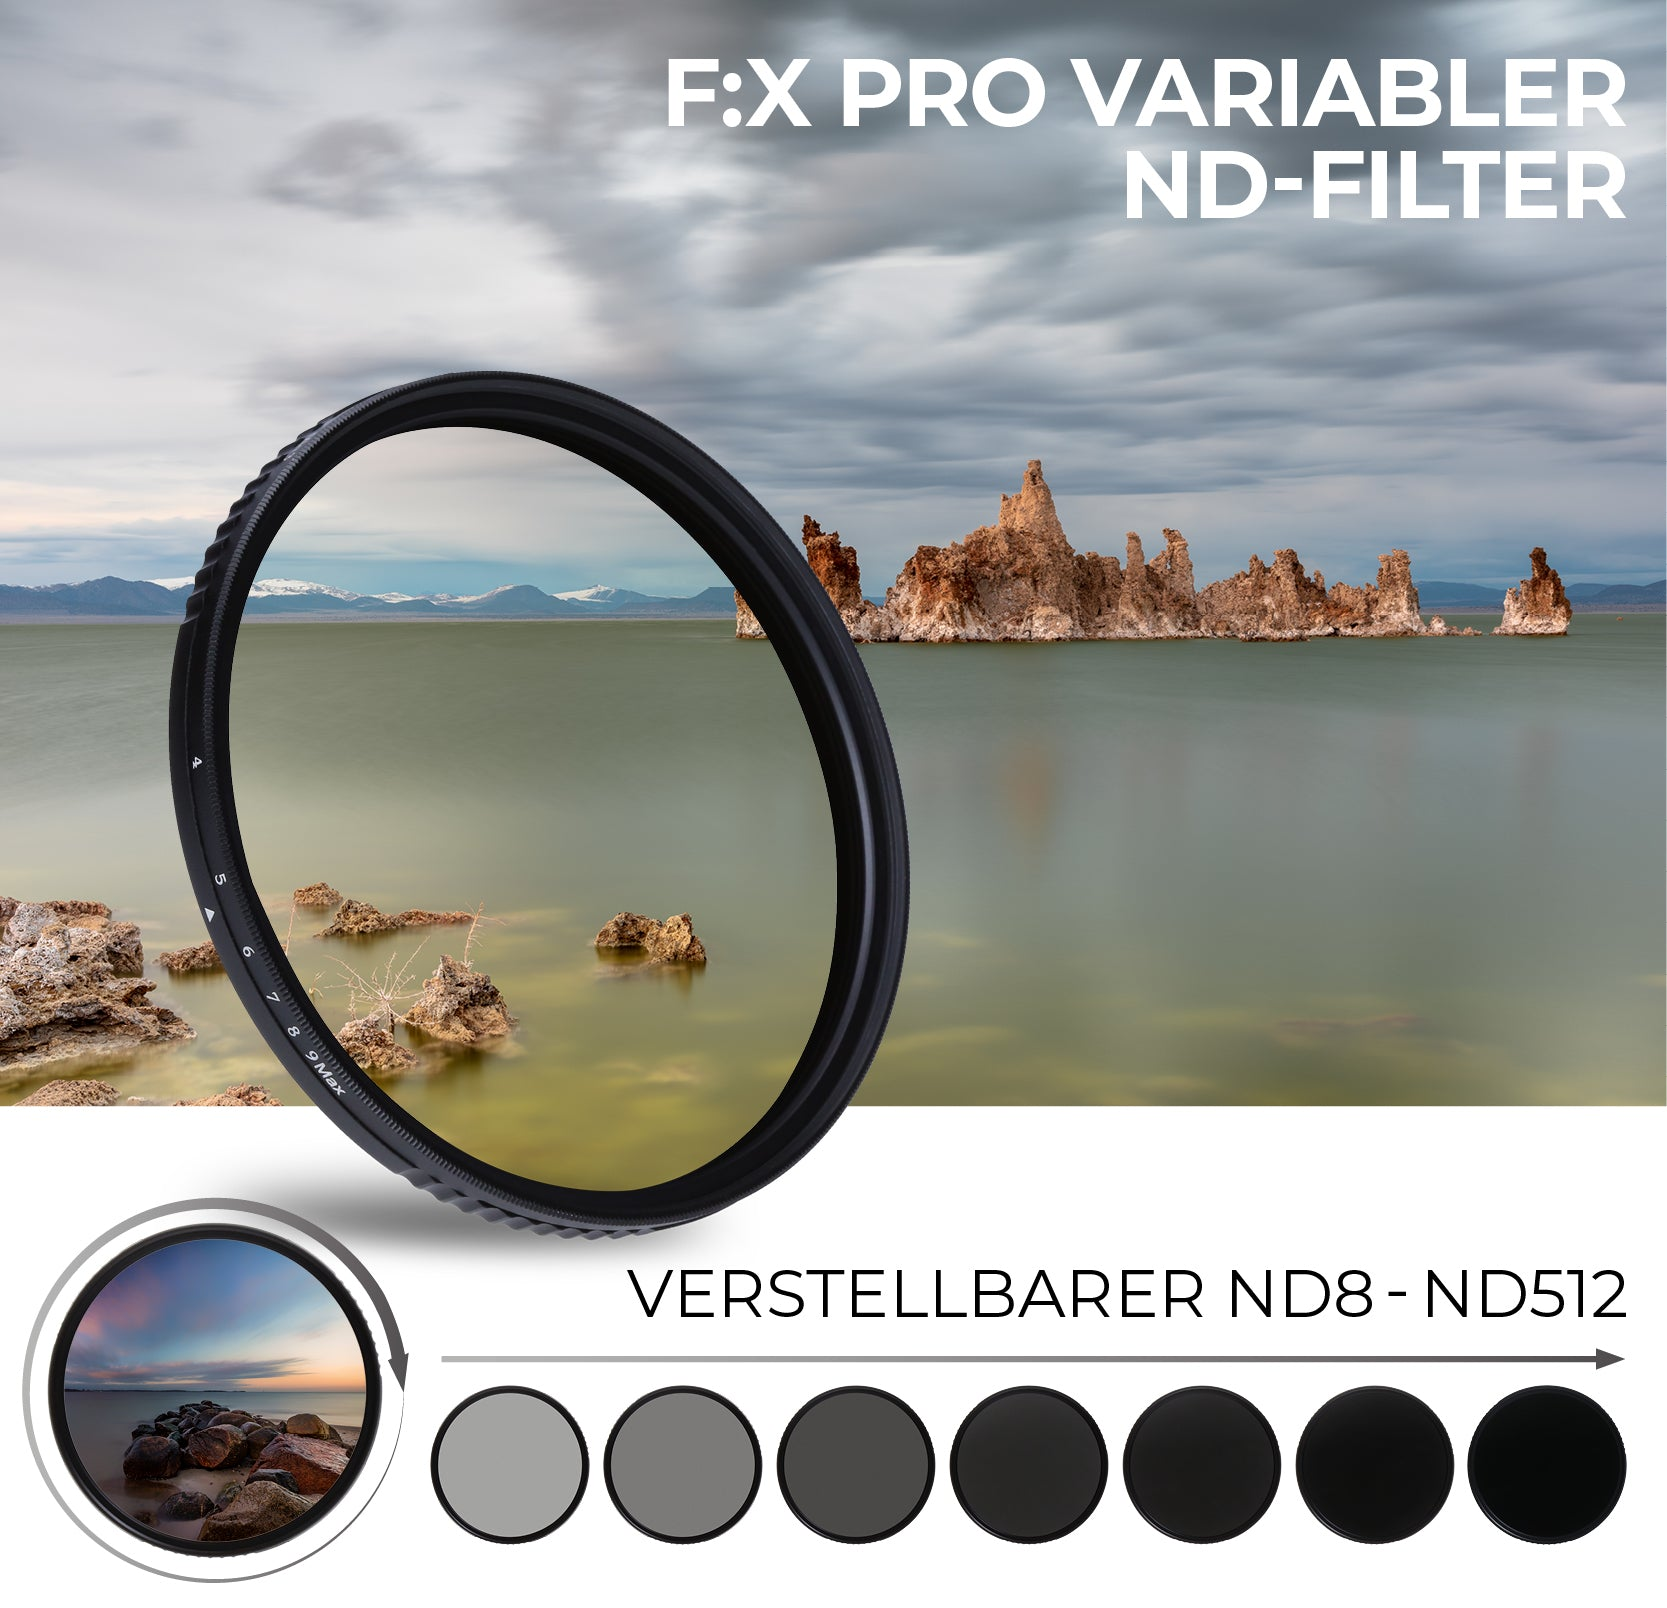 Variabler ND-Filter mit sieben Stufen